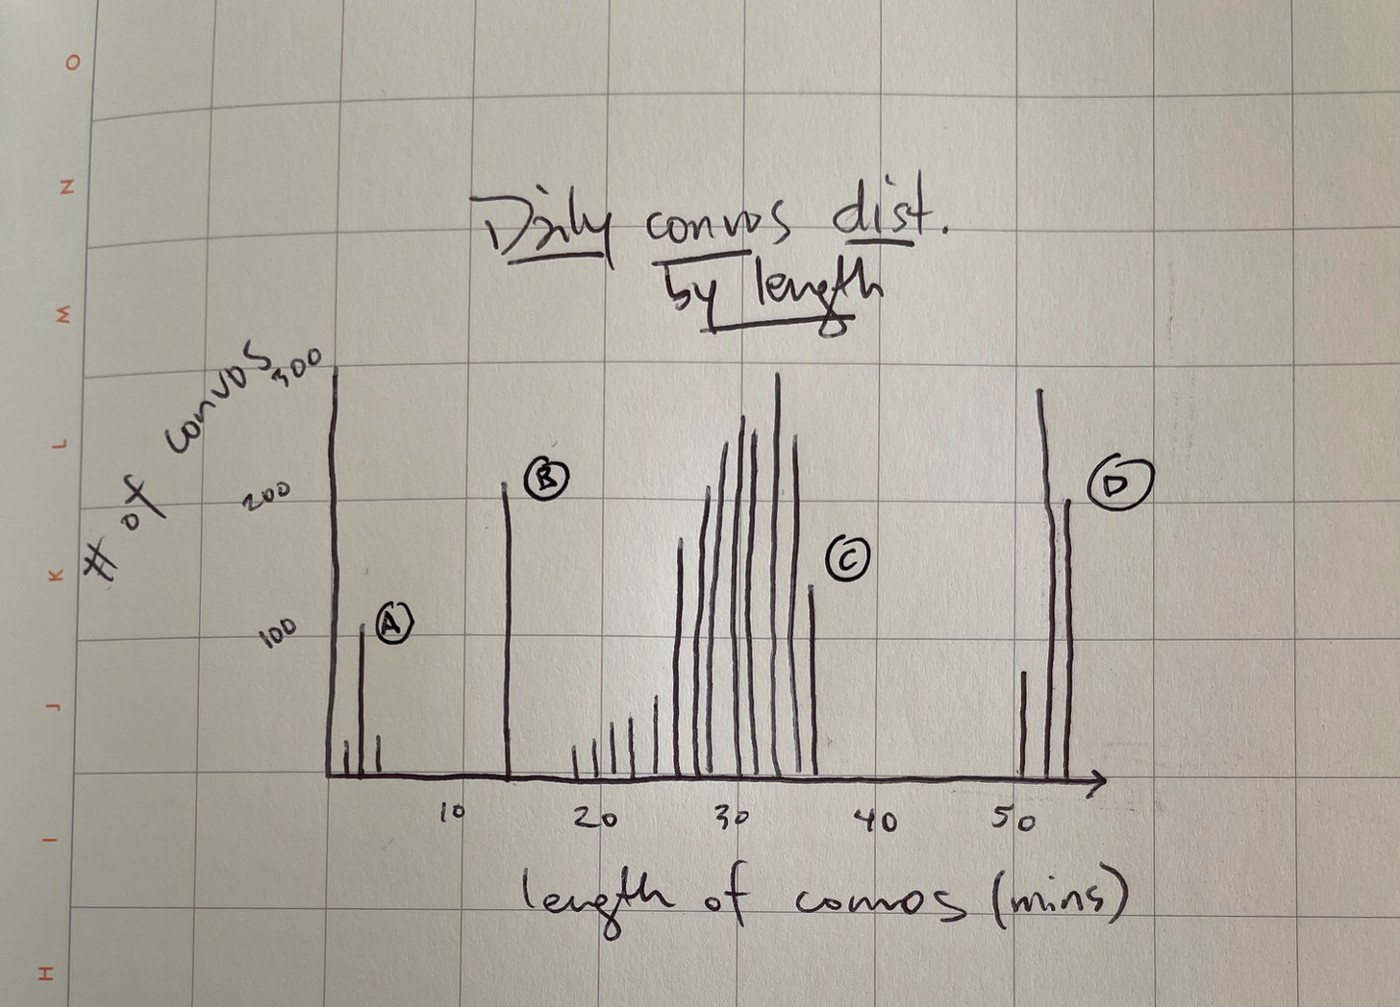 """A chart entitled, """"Daily conversations, distributed by length."""" You then see a bar chart. The y-axis is """"# of convos"""" and the x-axis is """"length of convos in minutes."""" You can see that there are four clusters of conversations at 0–1 minutes, 15 minutes, 25–30 minutes, and 55 minutes."""